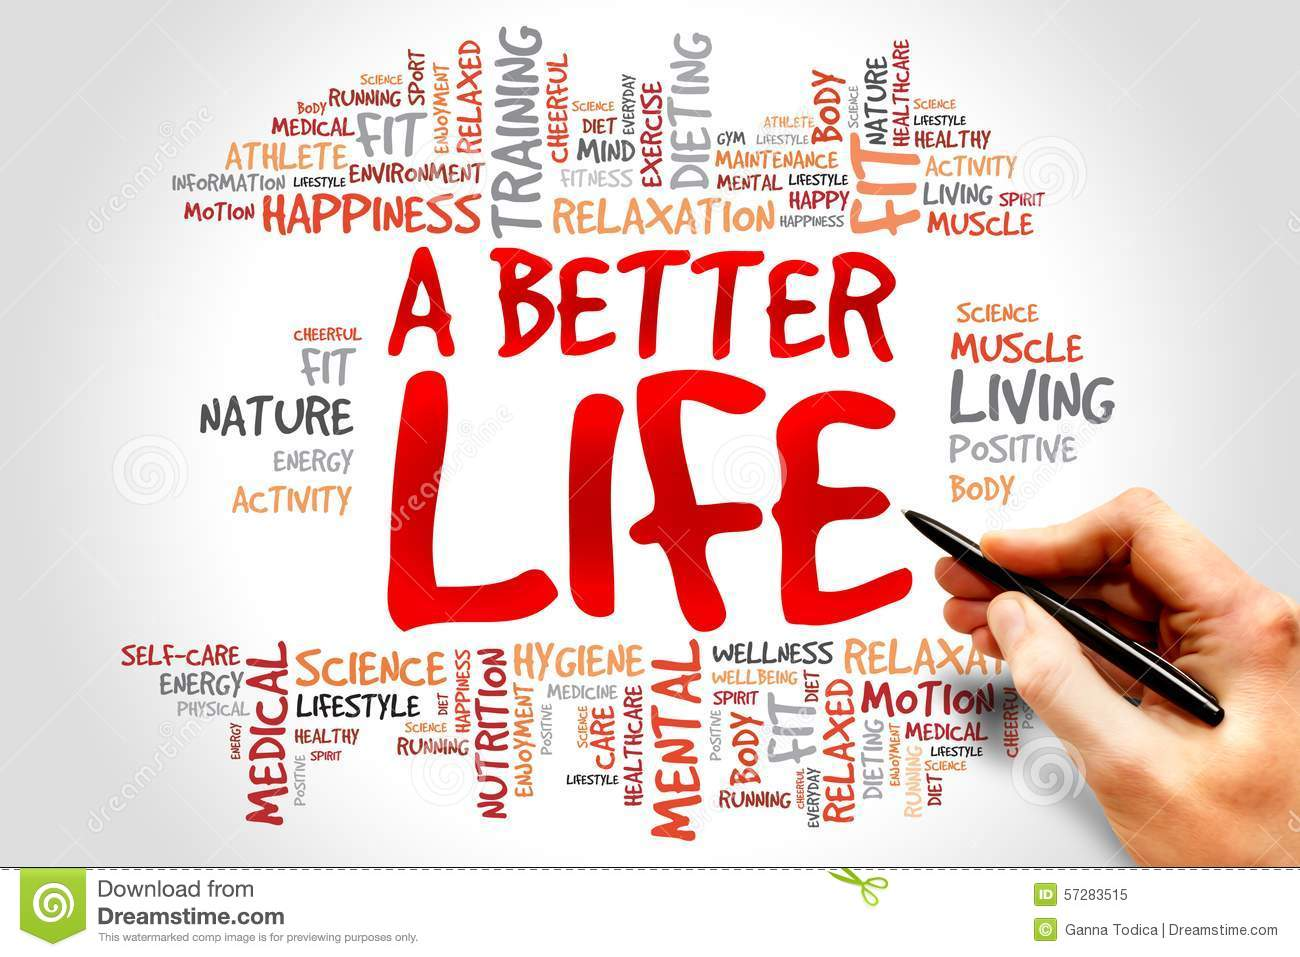 Quality of Life Better with Less Care at the End